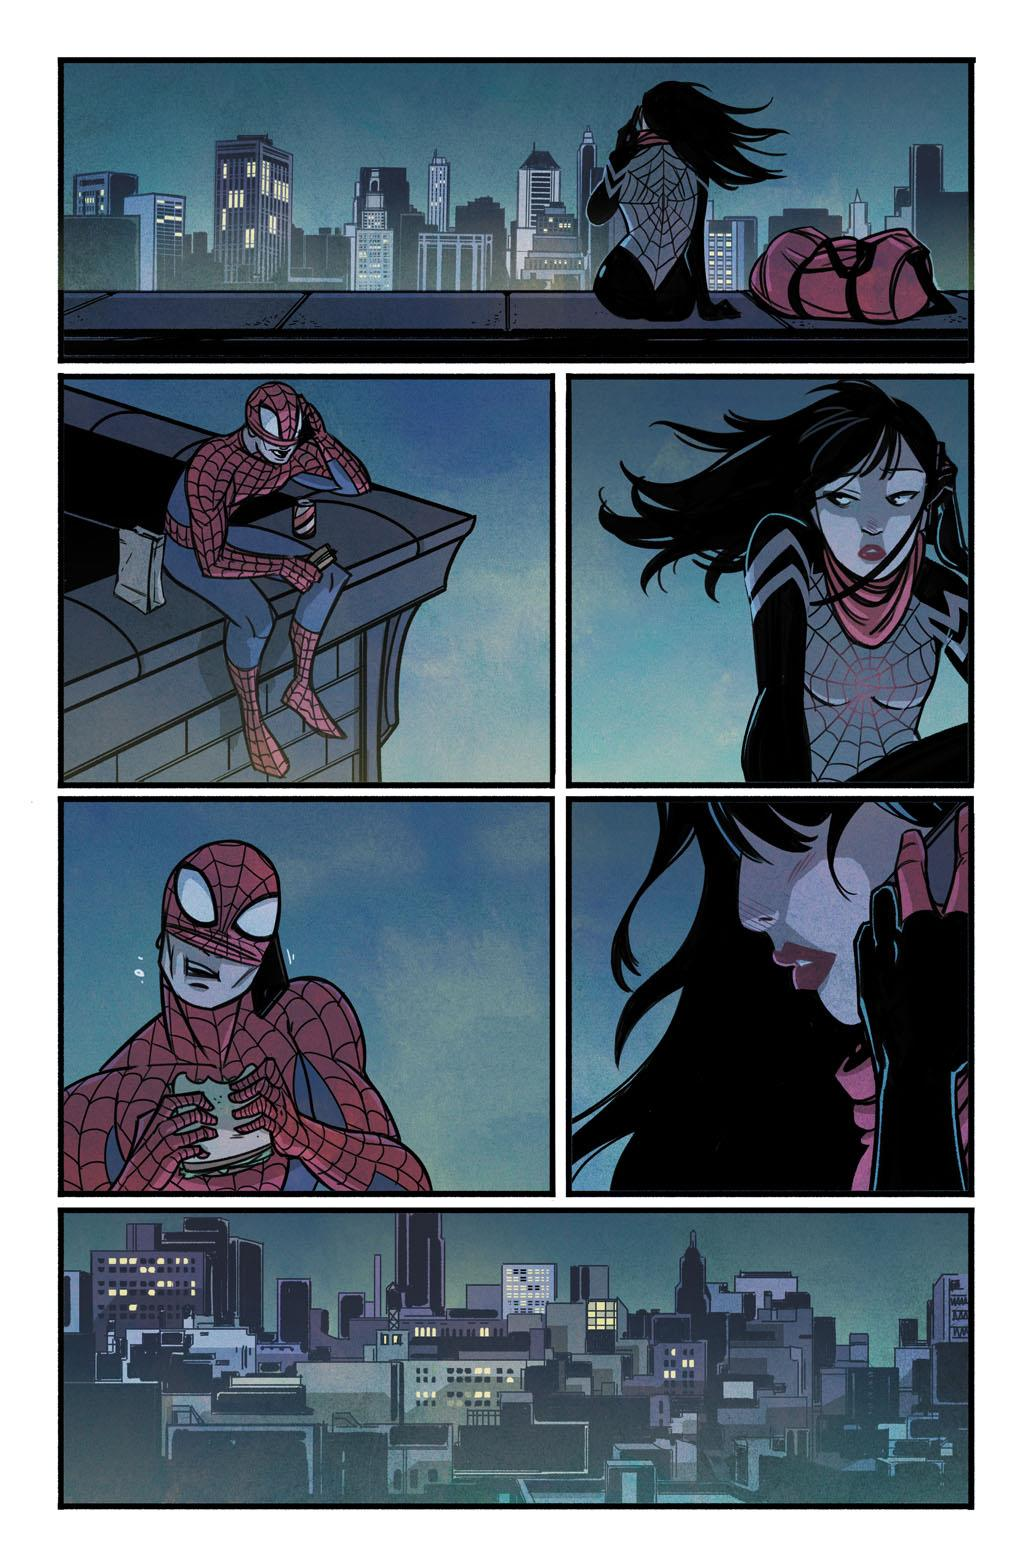 Marvel's new series tells the story of Cindy Moon and her crime-fighting, alter-ego named Silk.